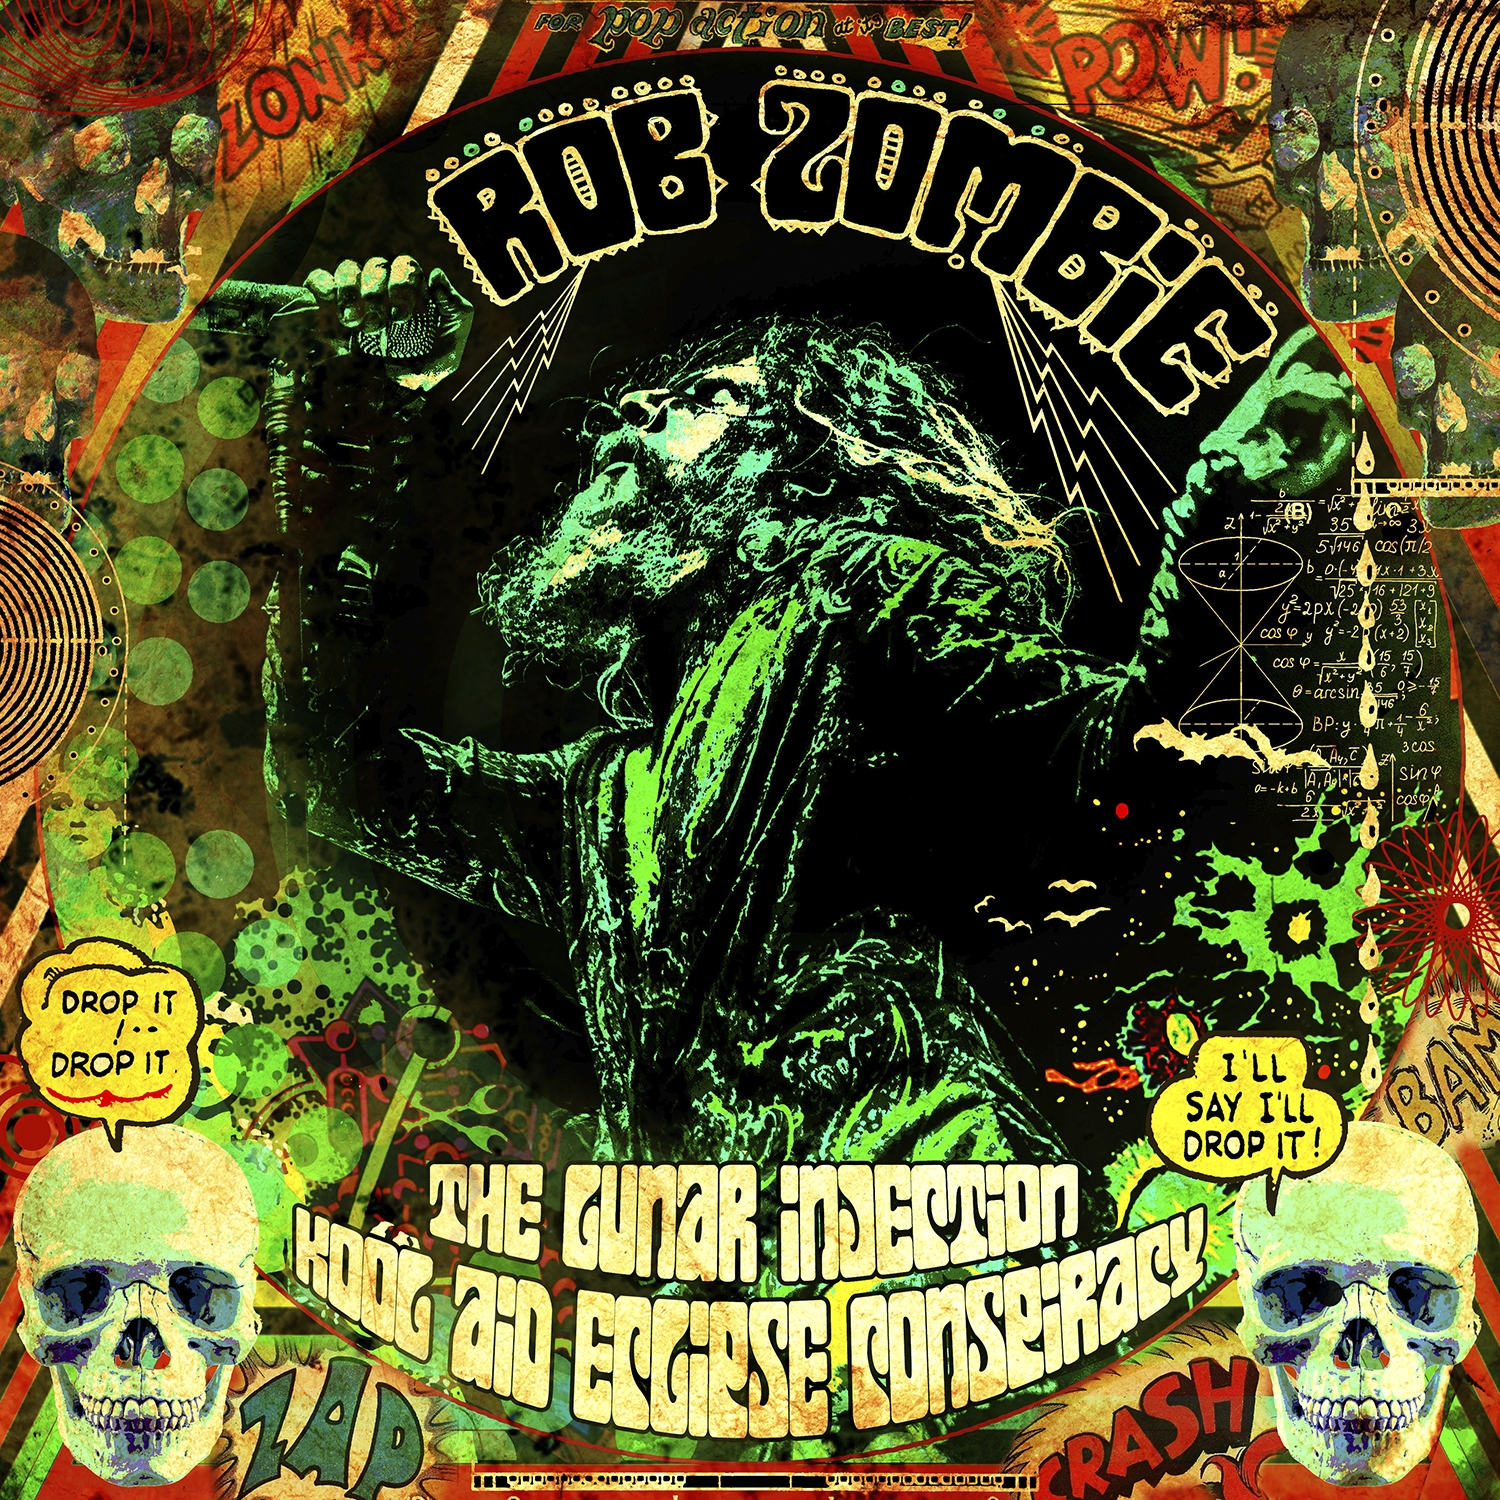 Rob Zombie - The Lunar Injection Kool Aid Eclipse Conspiracy - Artwork